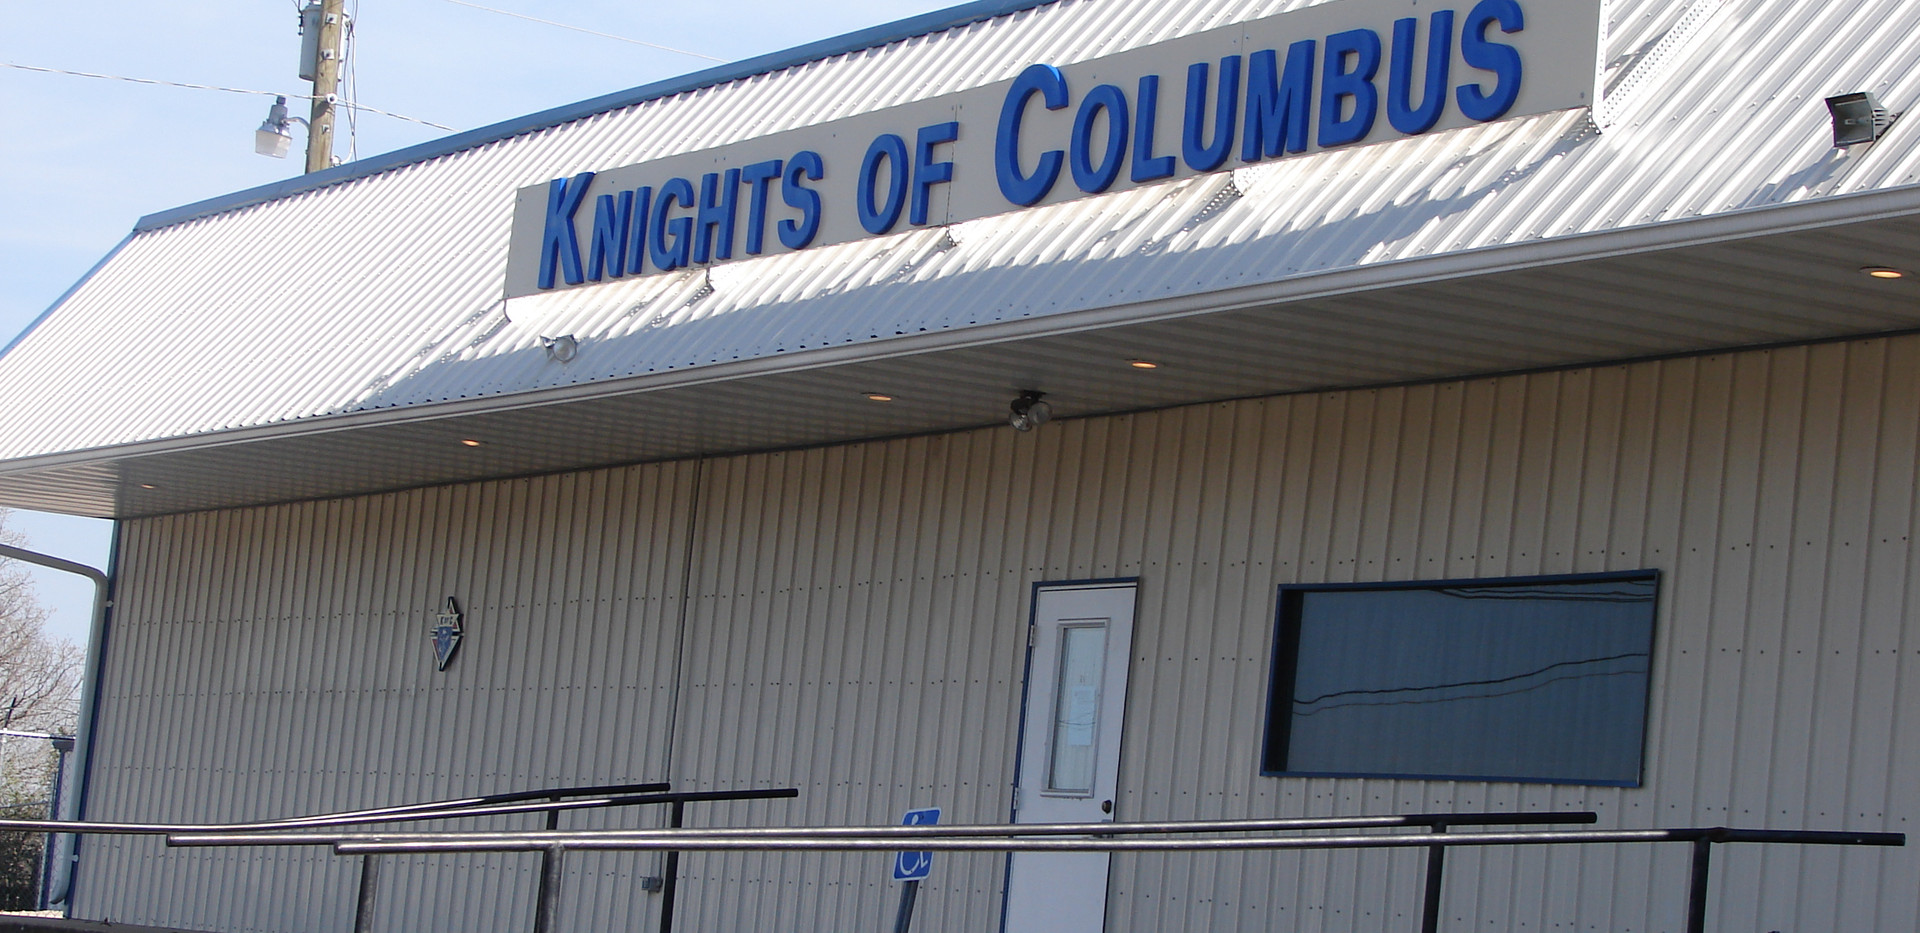 KNIGHTS OF COLUMBUS ROOF SIGN.jpg